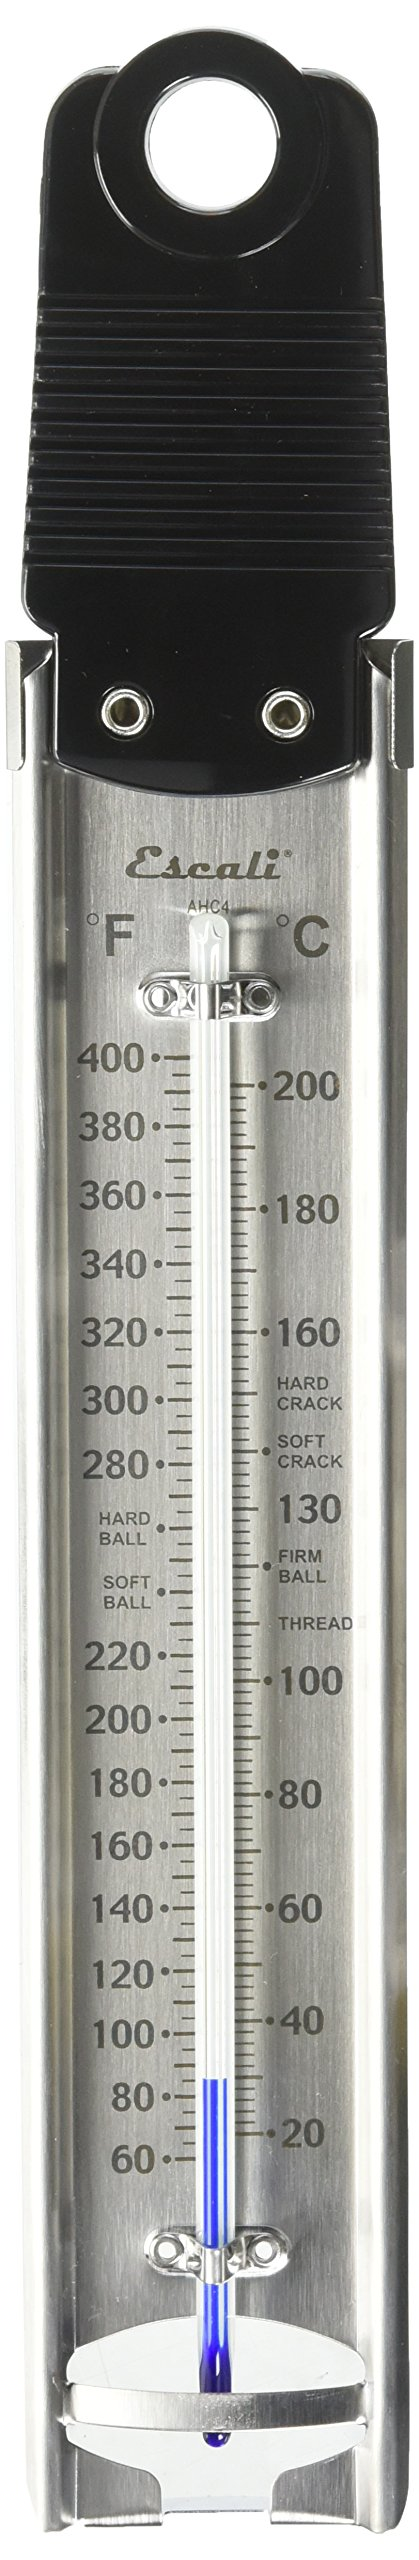 Escali AHC4 Deep Fry/Candy Thermometer, Silver